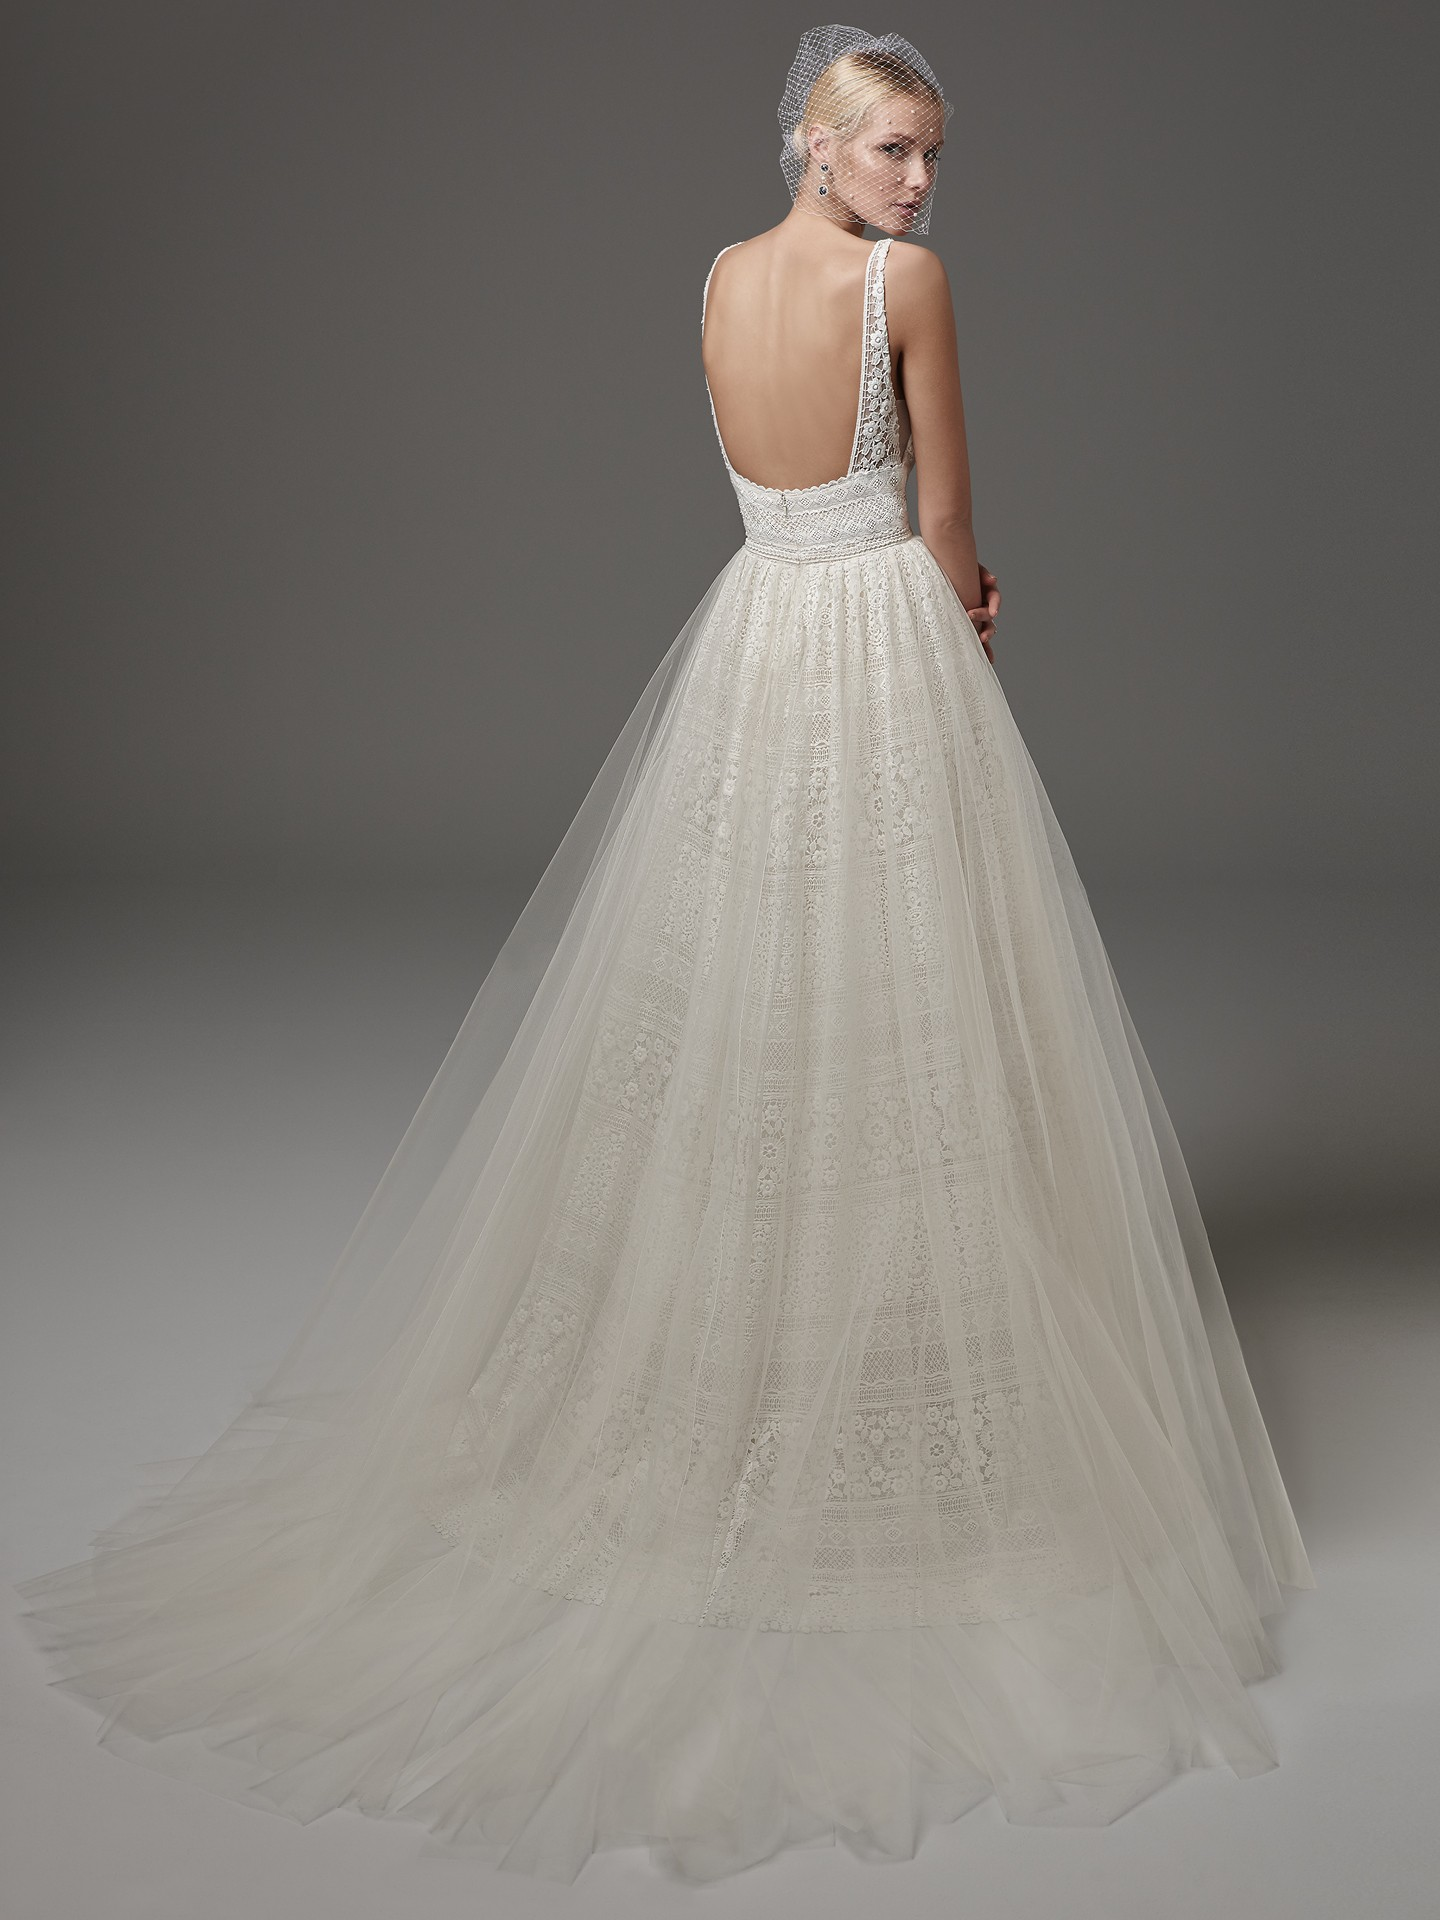 6 Best Wedding Dresses for a Rustic Wedding - Evan wedding dress by Sottero and Midgley